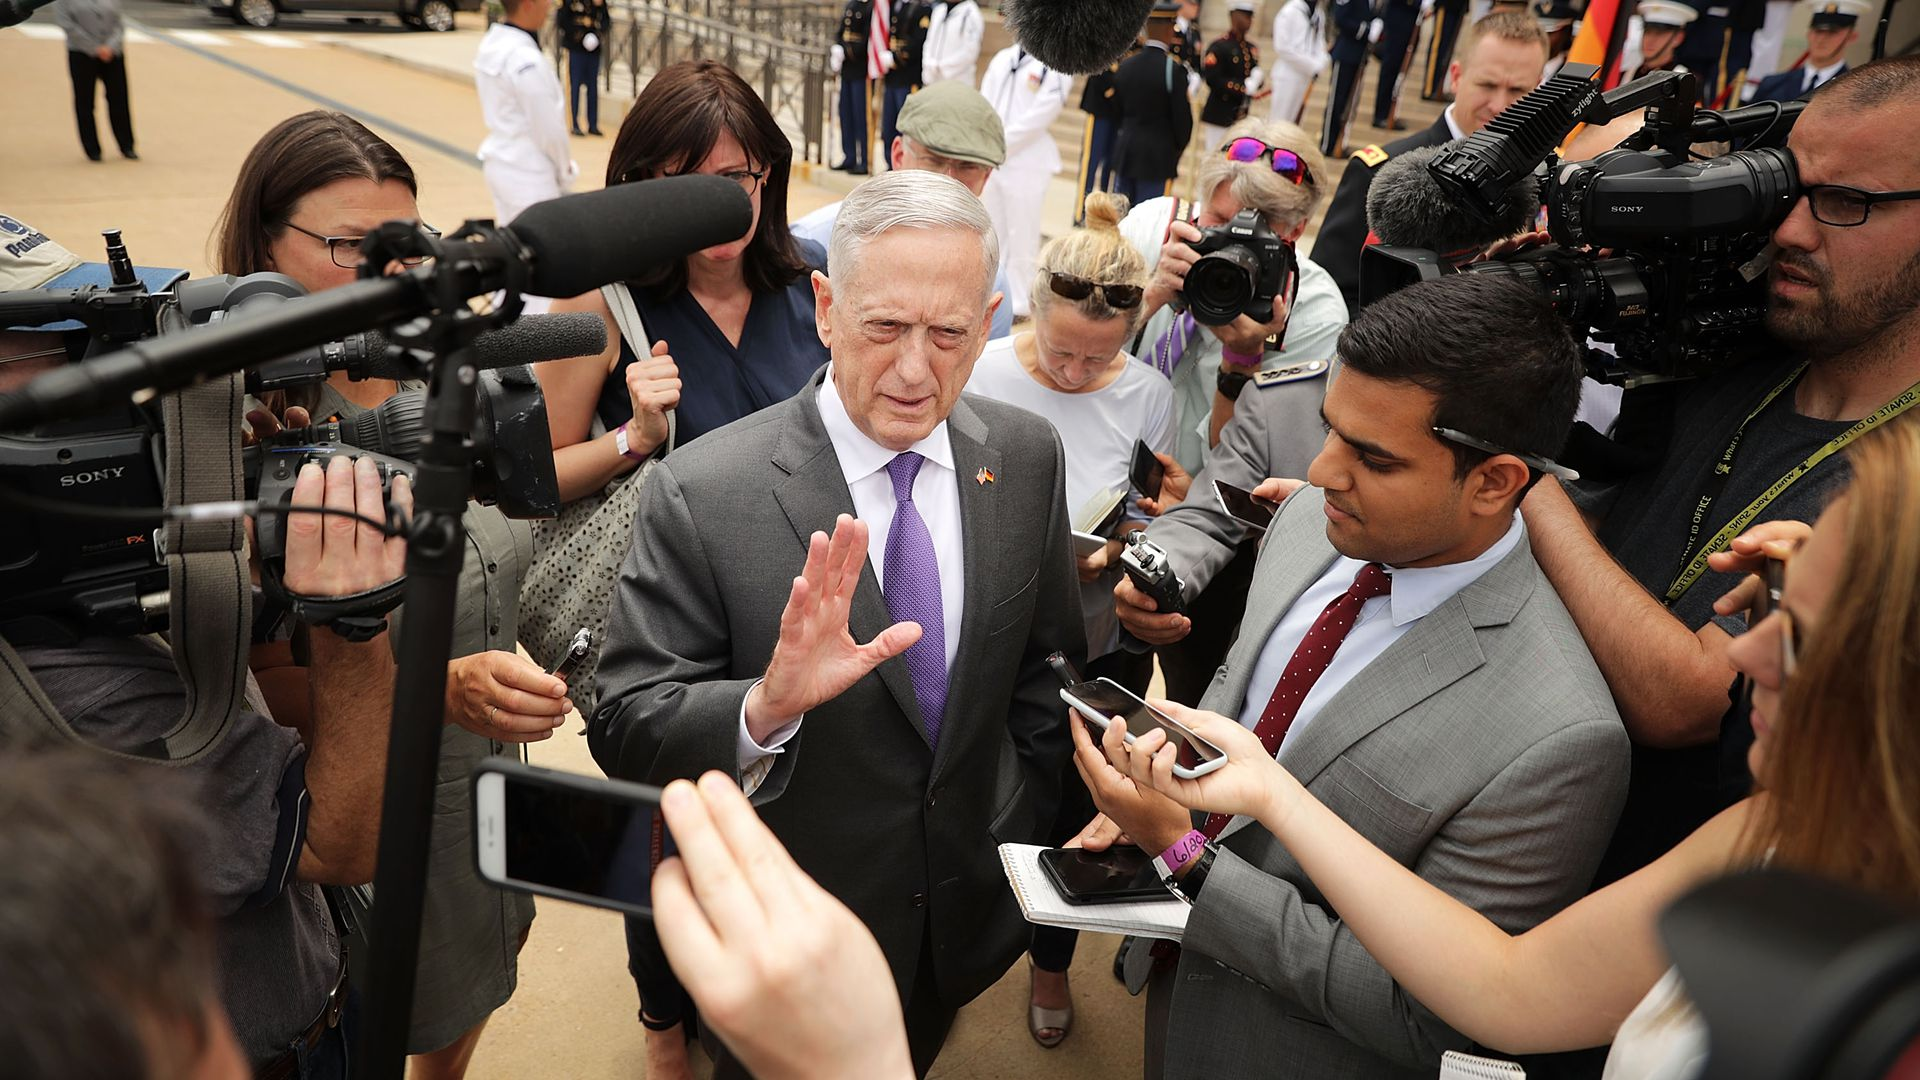 James Mattis surrounded by press.